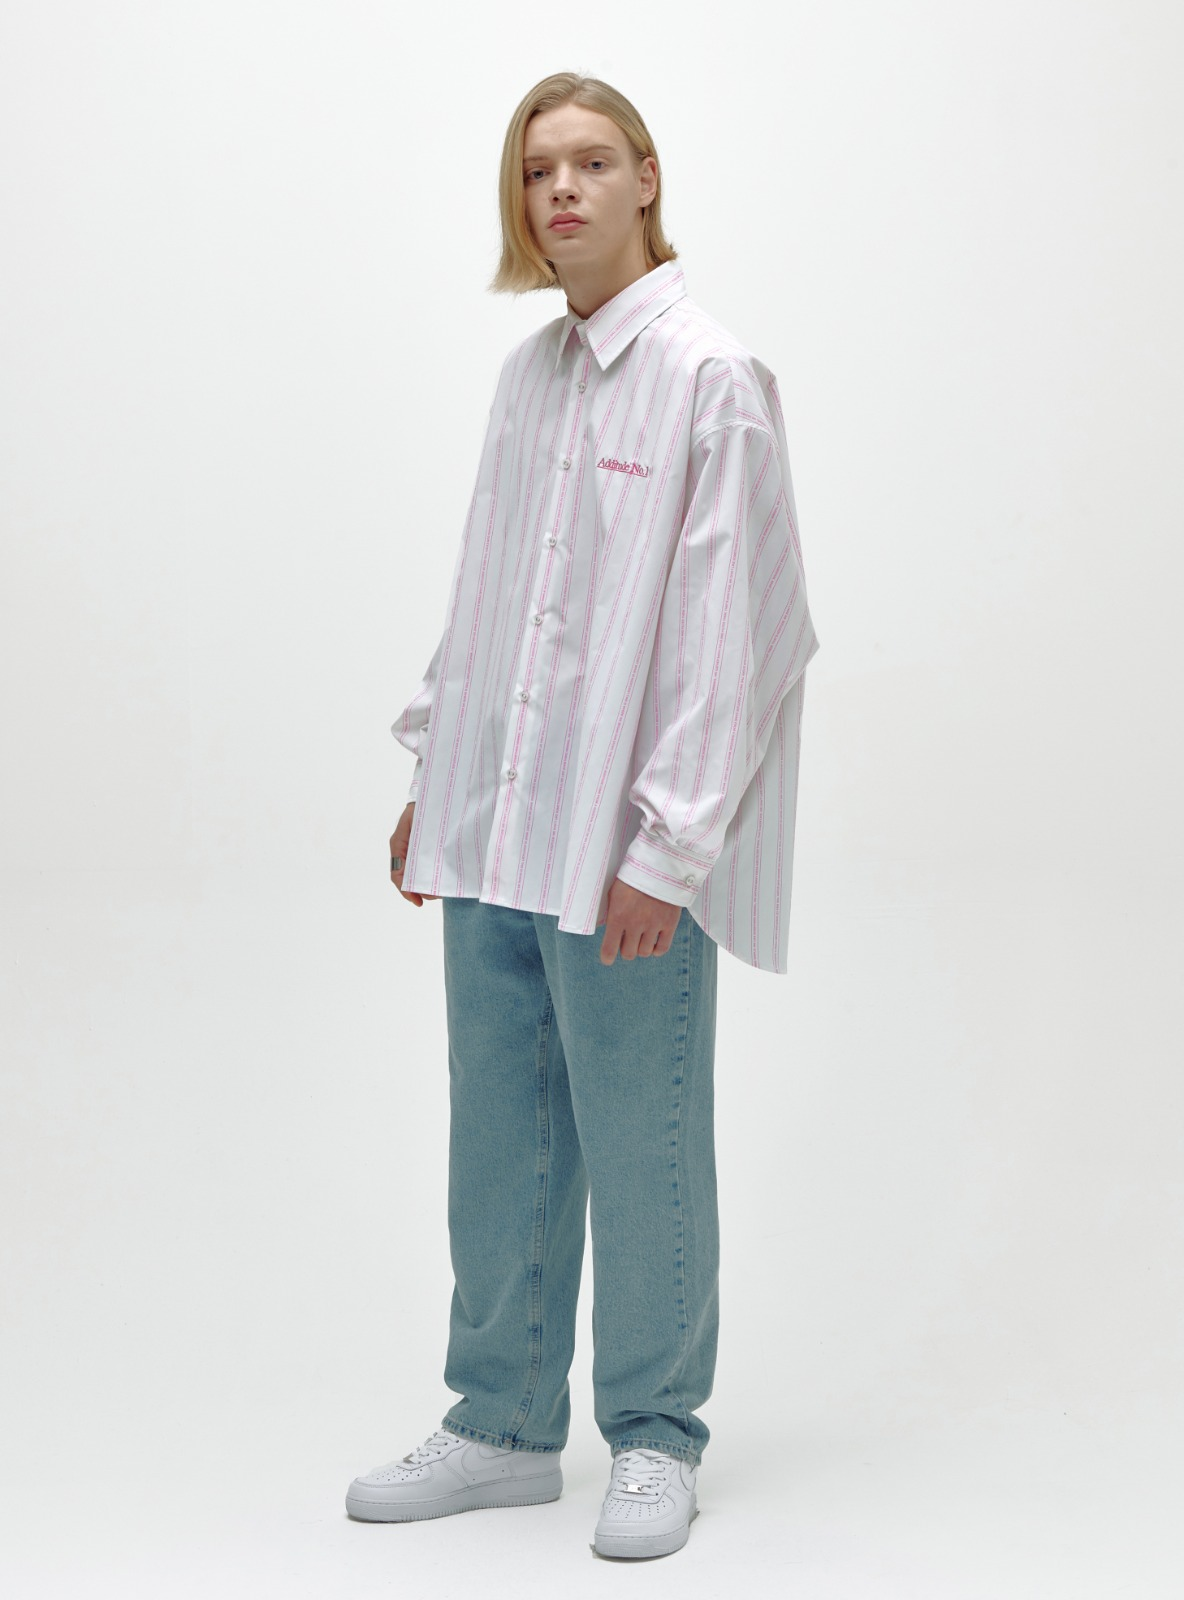 ADDITUDE No.1 AVANTGARDE SHIRT PINK